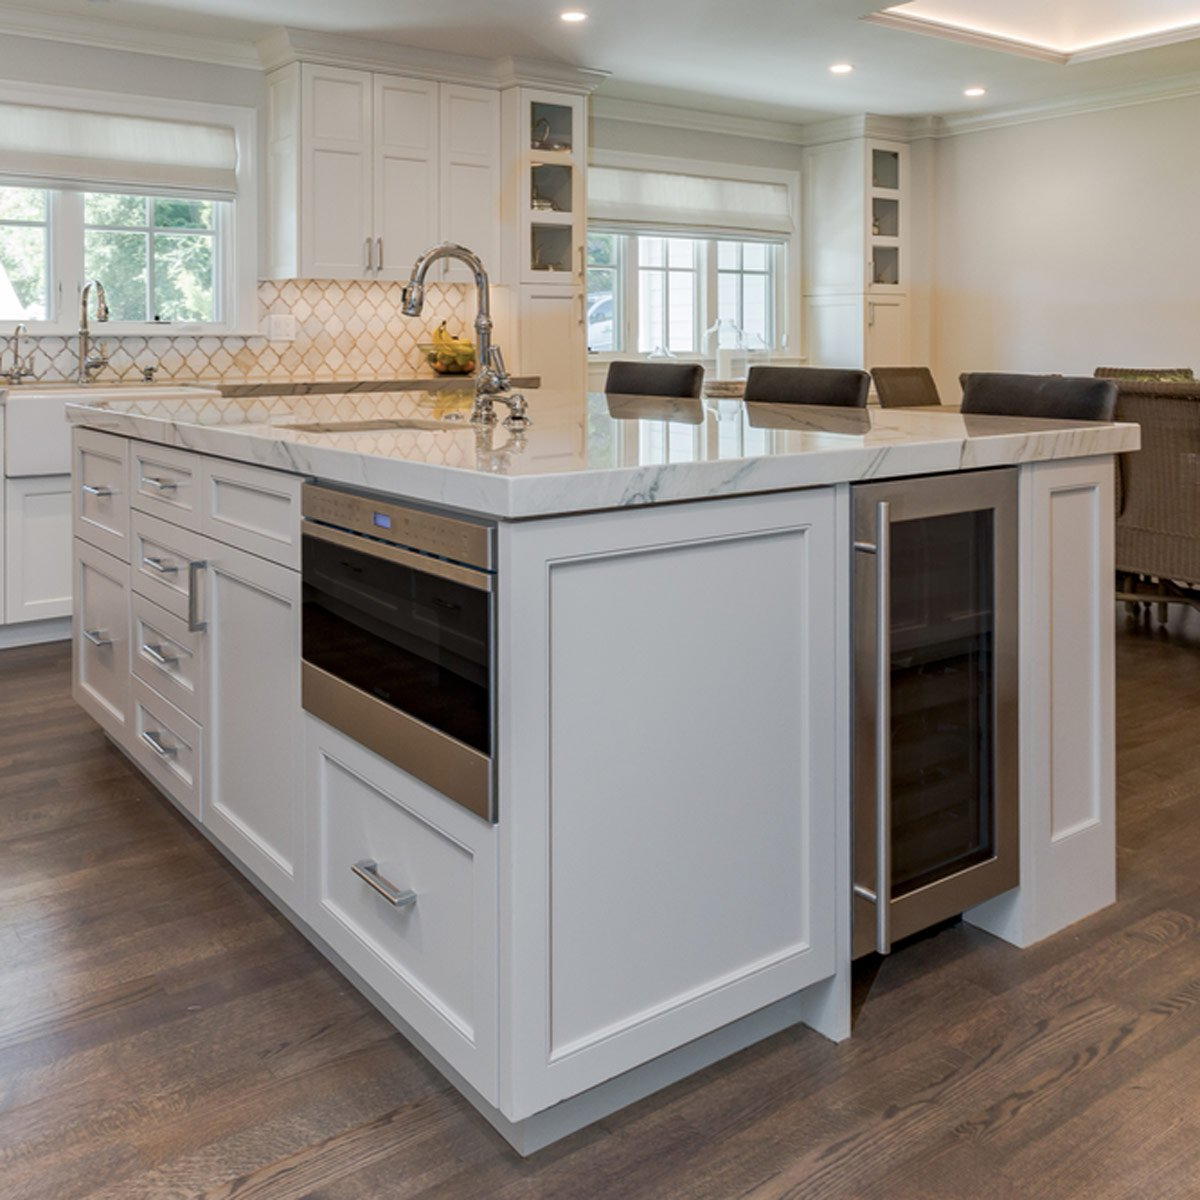 integrate appliances into your kitchen island IDTATSK